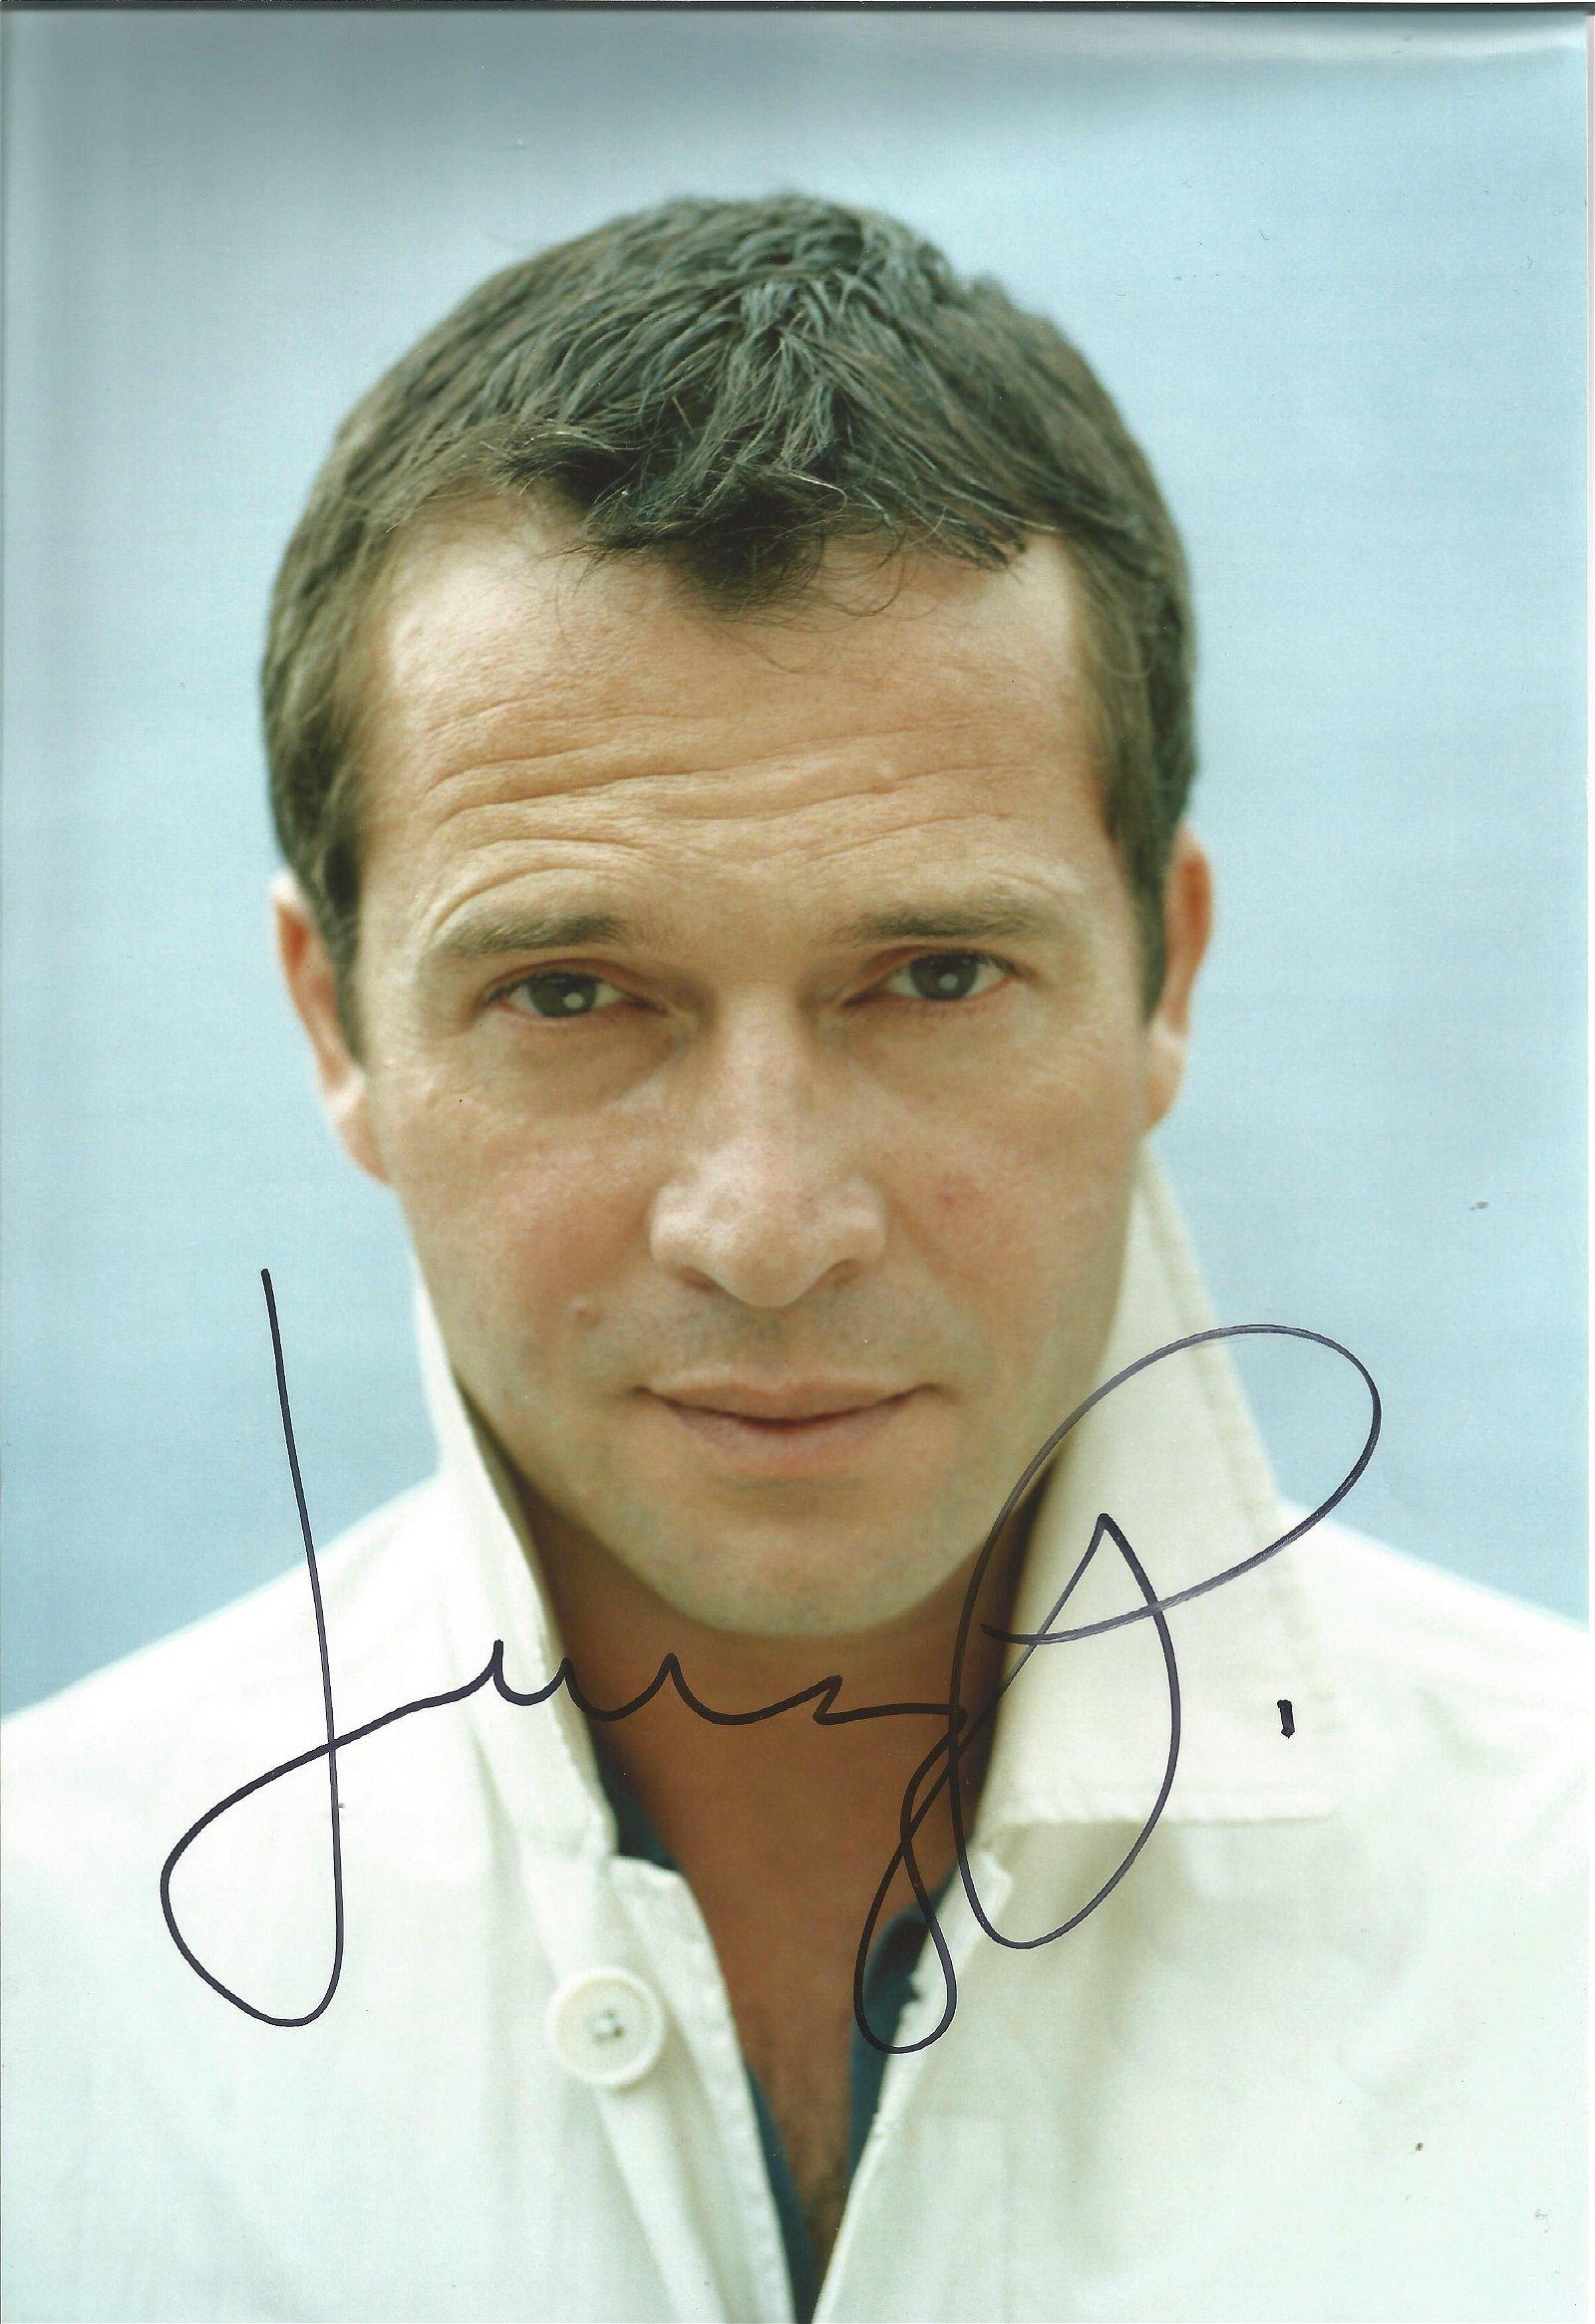 James Purefoy Actor Signed 8x12 Photo . Good Condition.